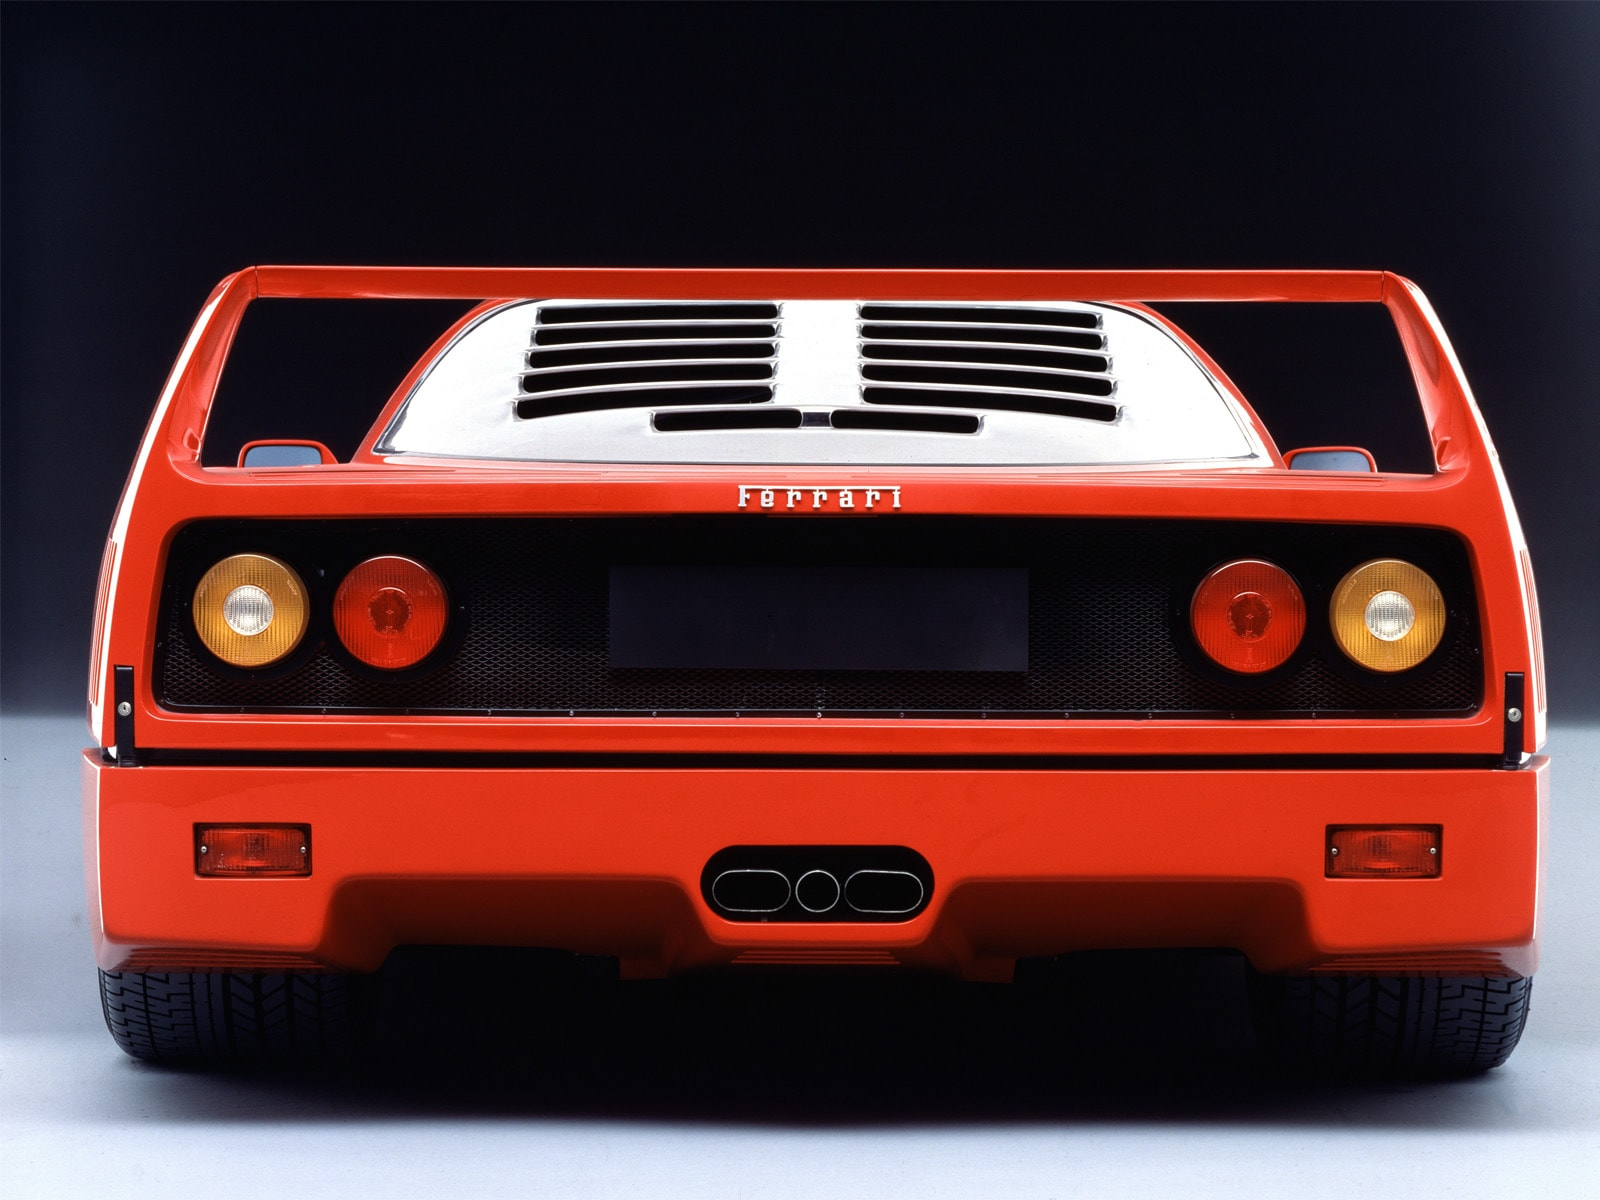 Ferrari F40 Hd Wallpapers 7wallpapers Net